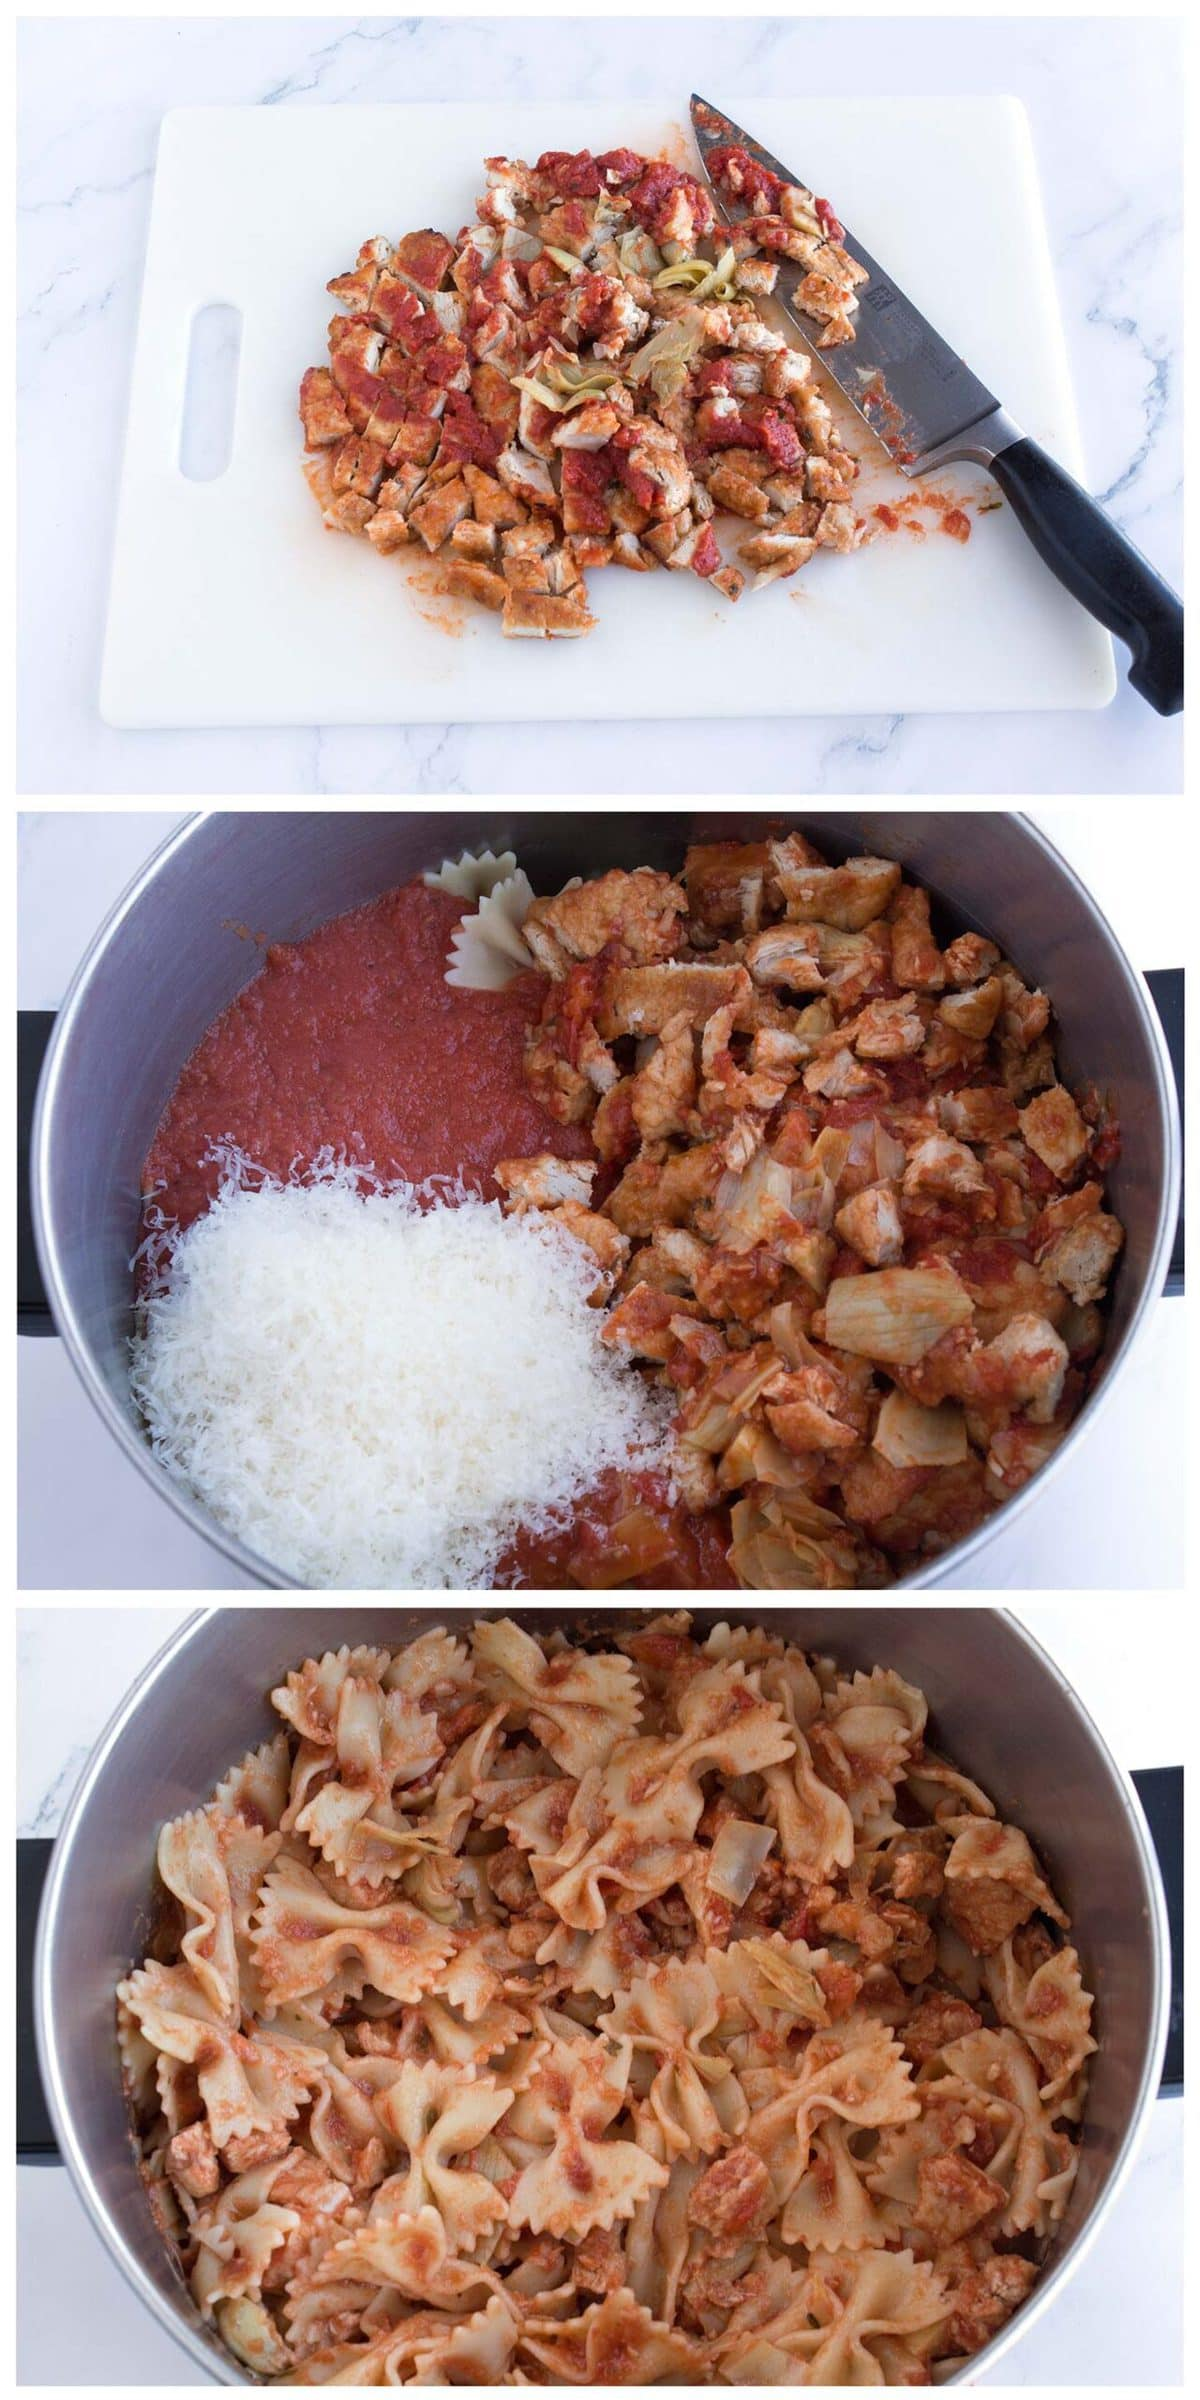 Chopped chicken on cutting board, ingredients in a pot, and final pasta stirred in pot